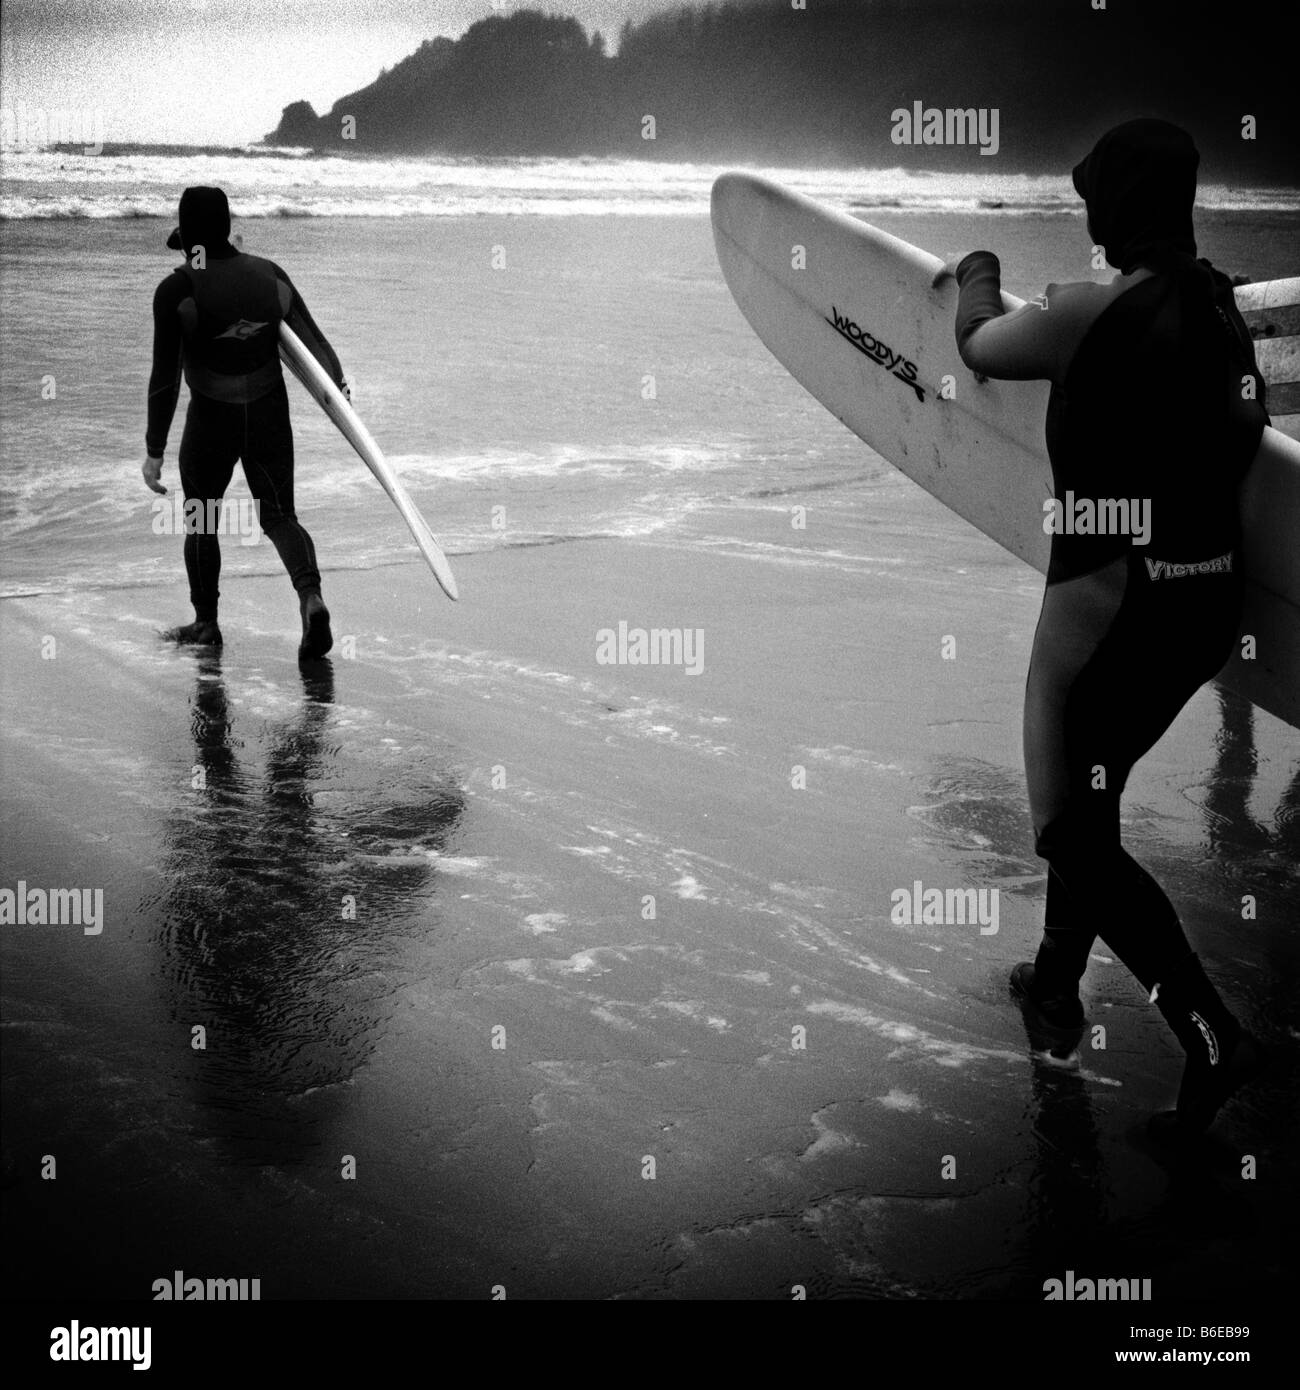 Two surfers head towards the water at Short Sands Beach, in Oregon. - Stock Image